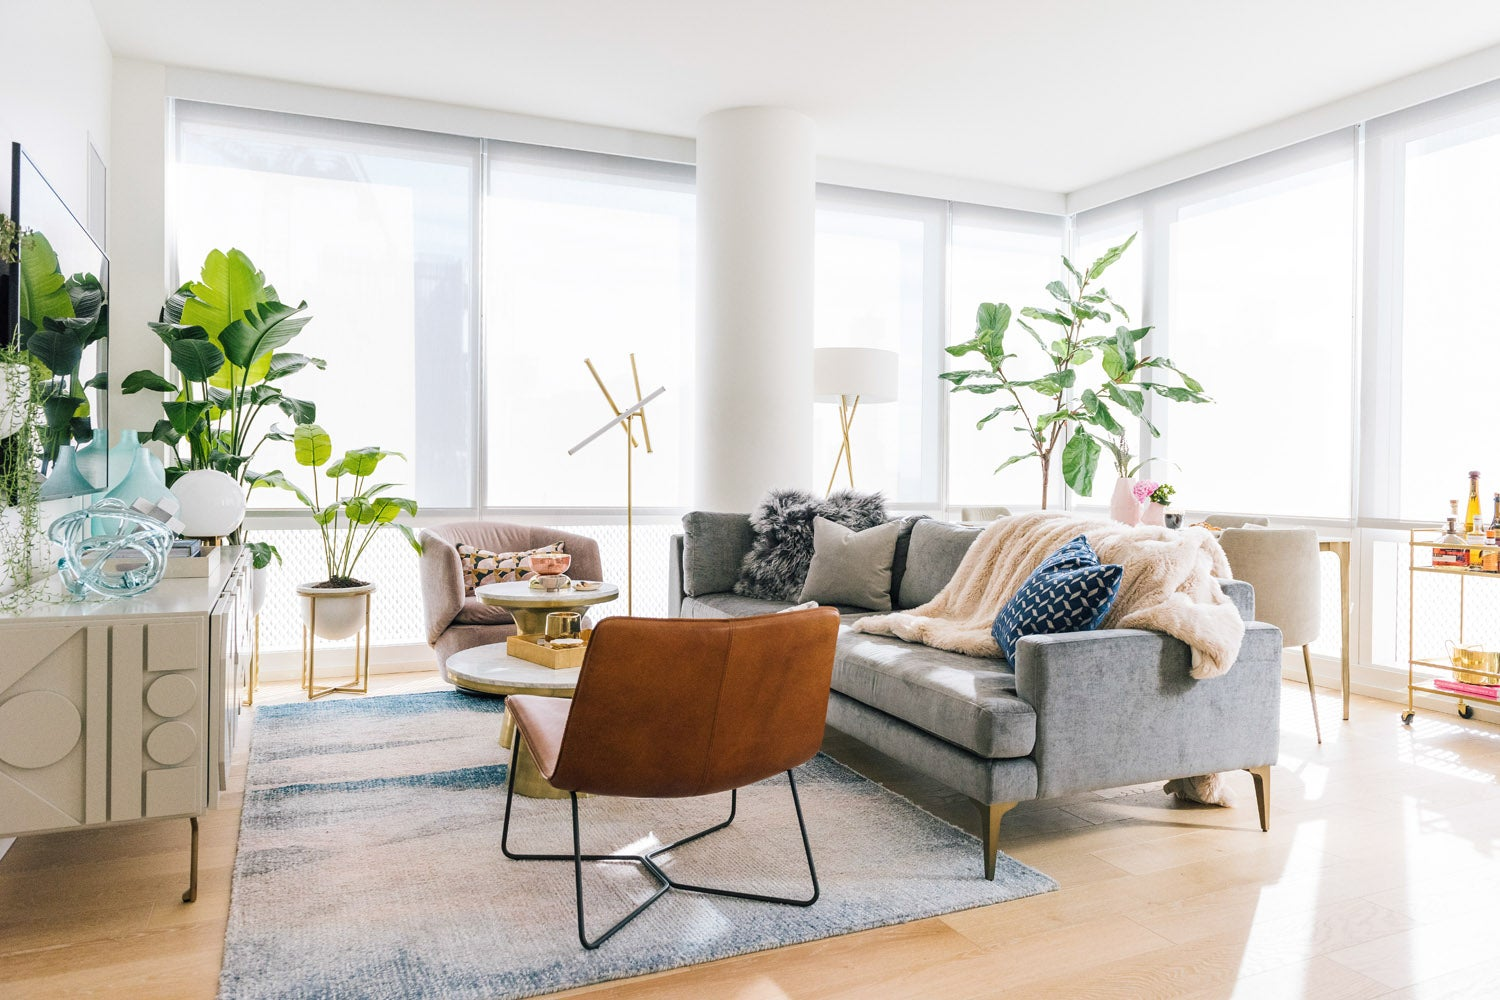 apartemtn living room with gray sofa